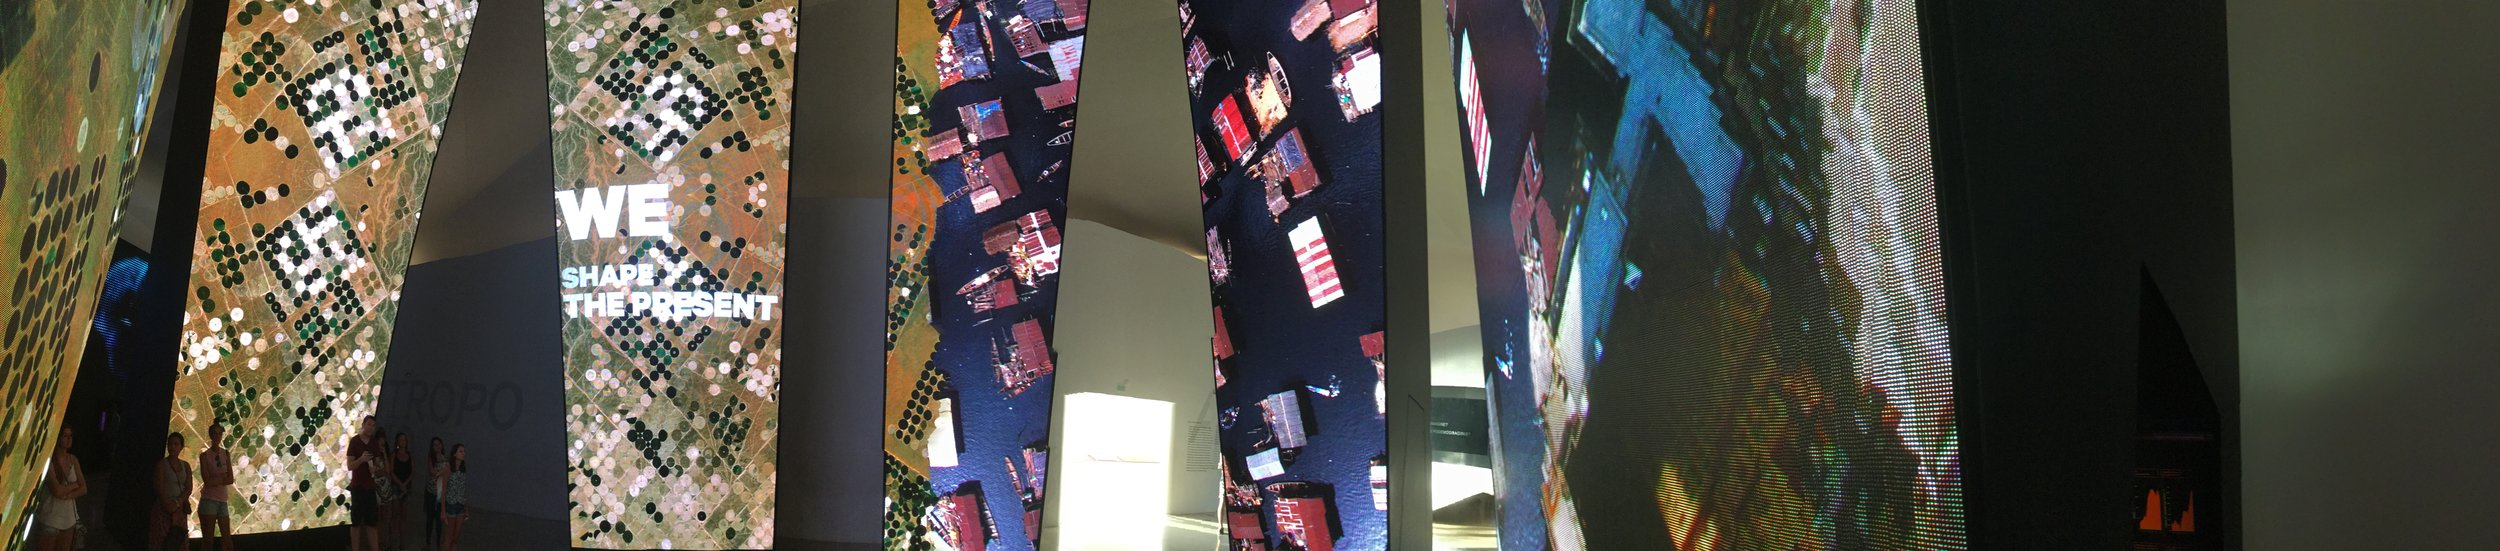 Another panorama of the multimedia screens.   We got swipe cards at the entrance that we could place on exhibits and then the text all switched to English. You could type in your name and email address and then the museum would remember which exhibits you had seen (and they can of course track what people view). It is a really high tech place.   We visited on the day of free admission (another benefit of an unhurried sabbatical) so there were quite a few people but we looked in detail into some screens that talked about the future of DNA modification, artificial body parts, individualized medicine and the ethical questions around scientific advances. We have also watched our favorite vet program on the iPad and learned about harvesting stem cells to treat illnesses - in that case for kidney failure in a cat. I love how the stuff we see starts to have connotations for Lili. This makes for great conversations.